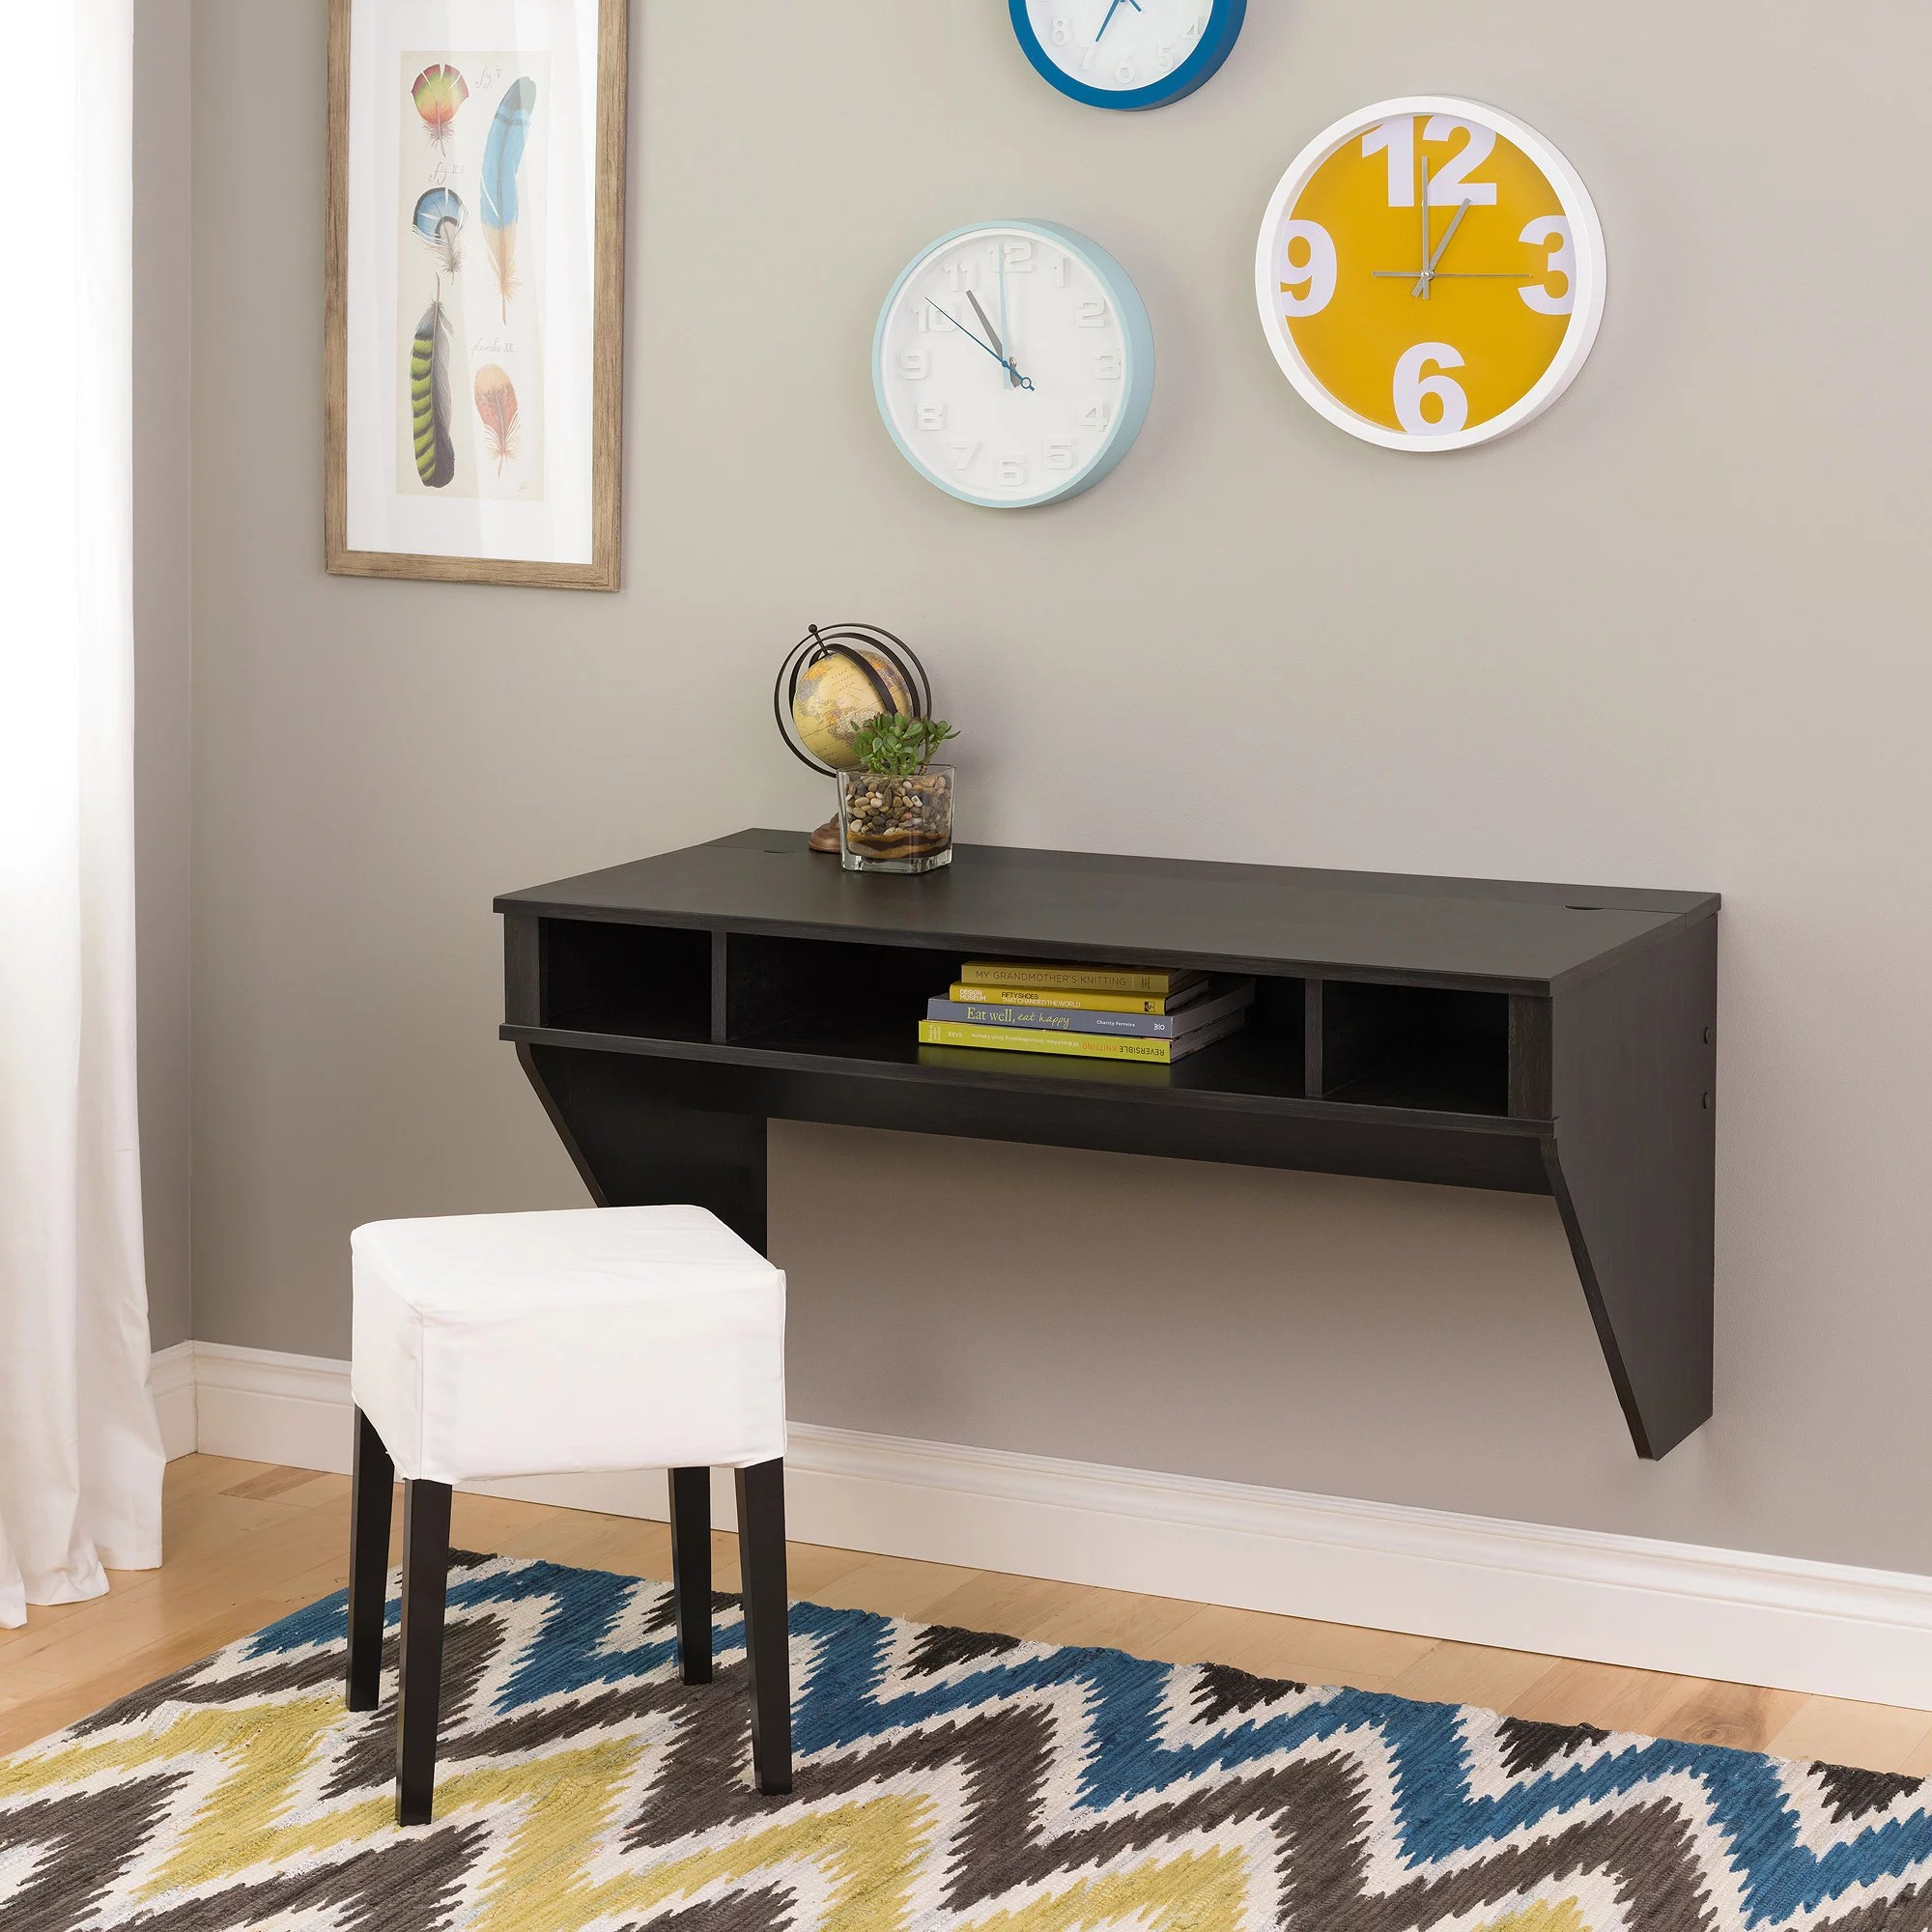 Wall Mounted Desks For Small Spaces Prepac Wall Hanging Desk